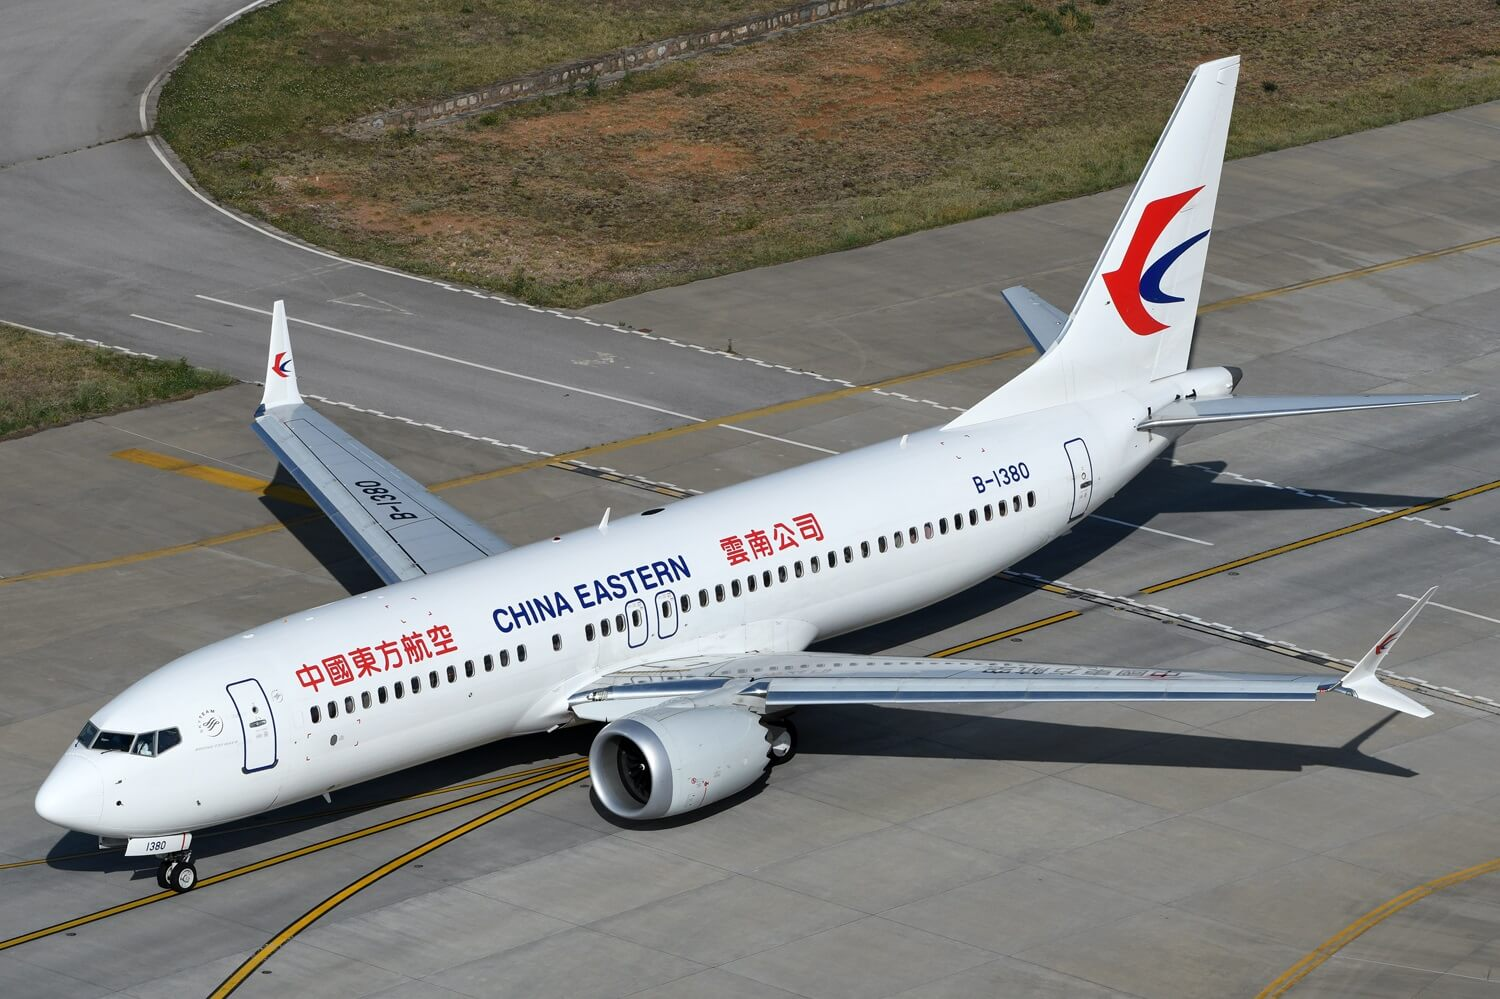 'Big losses': China Eastern Airlines demands compensation from Boeing for 737 MAX grounding